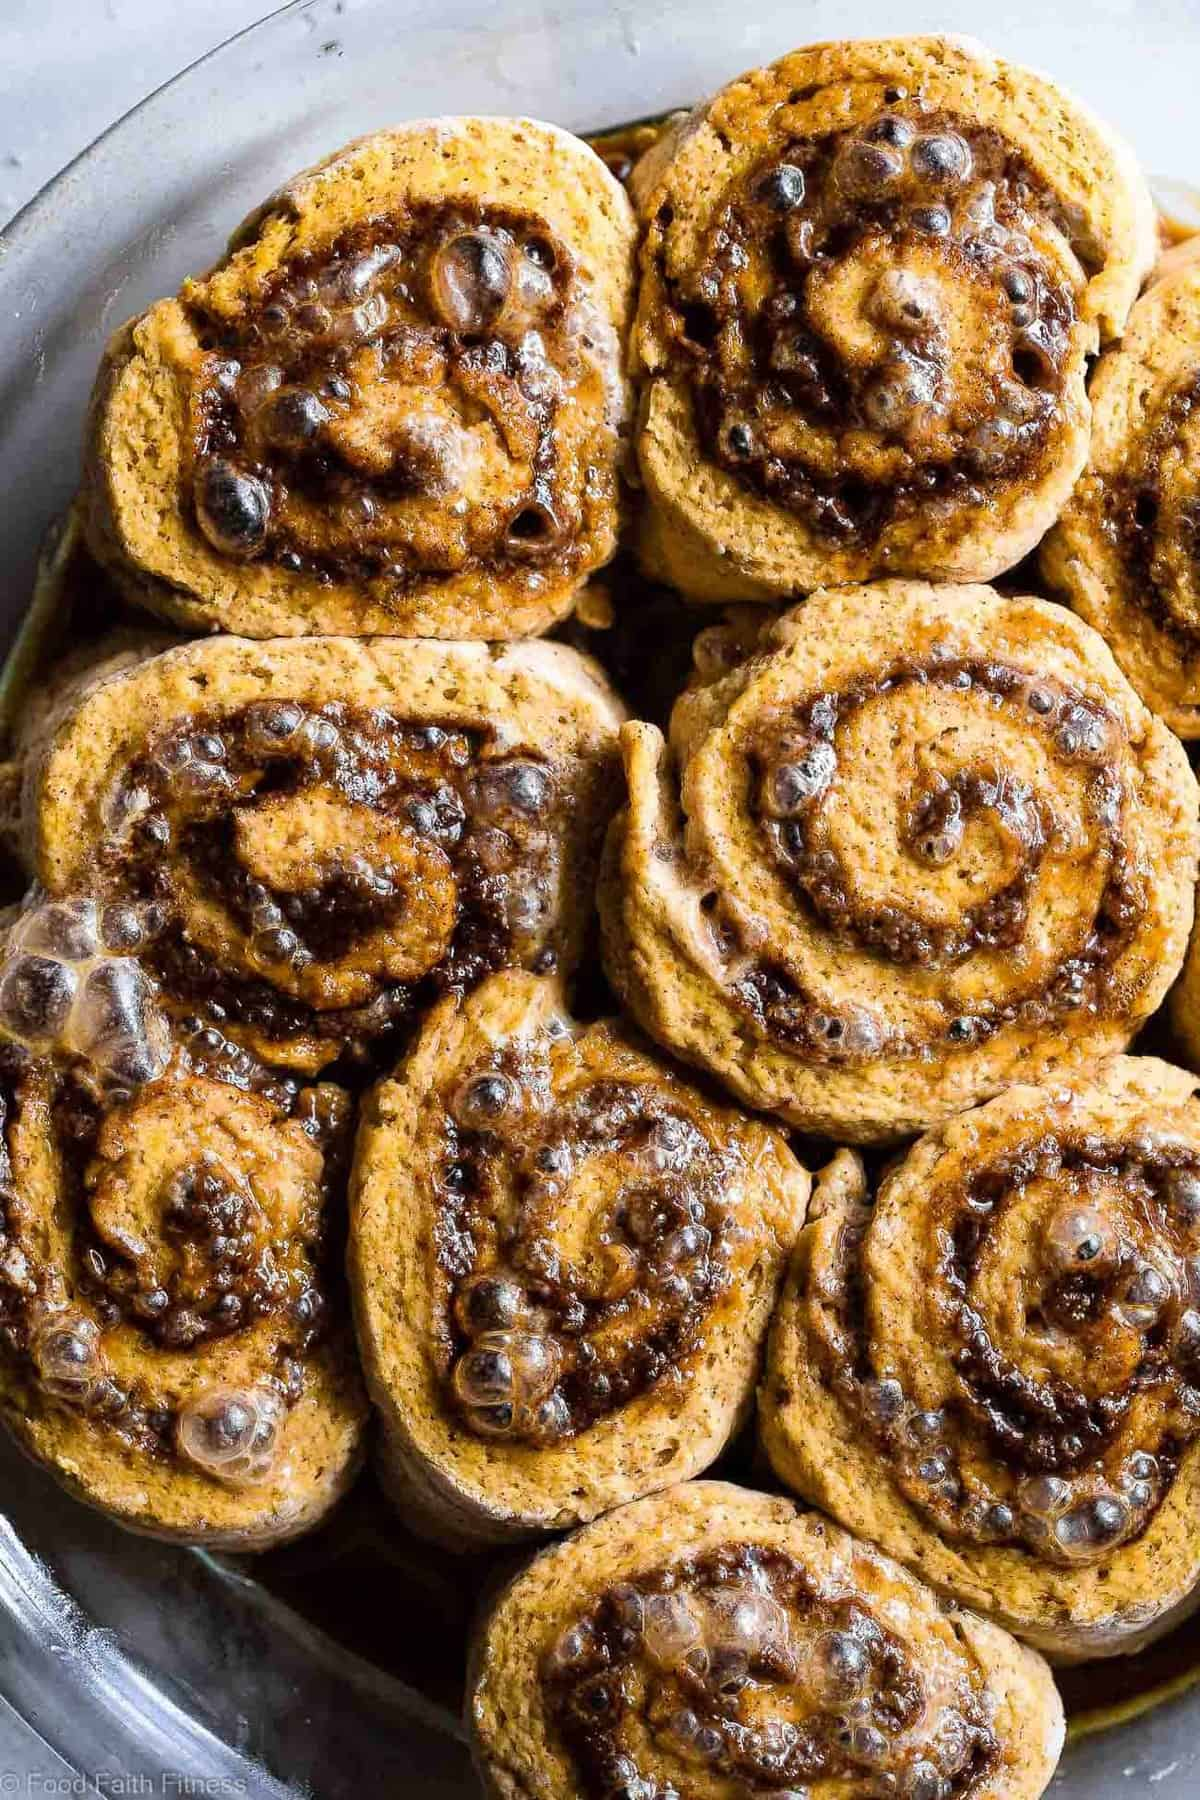 Gluten Free Vegan Pumpkin Cinnamon Rolls Recipe -These easy Pumpkin Spice dairy free Cinnamon Rolls are so soft and fluffy you won't believe they're gluten, dairy and egg free! Loaded with spicy-sweet fall flavor and SO delicious! | #Foodfaithfitness | #Glutenfree #vegan #dairyfree #eggfree #pumpkin